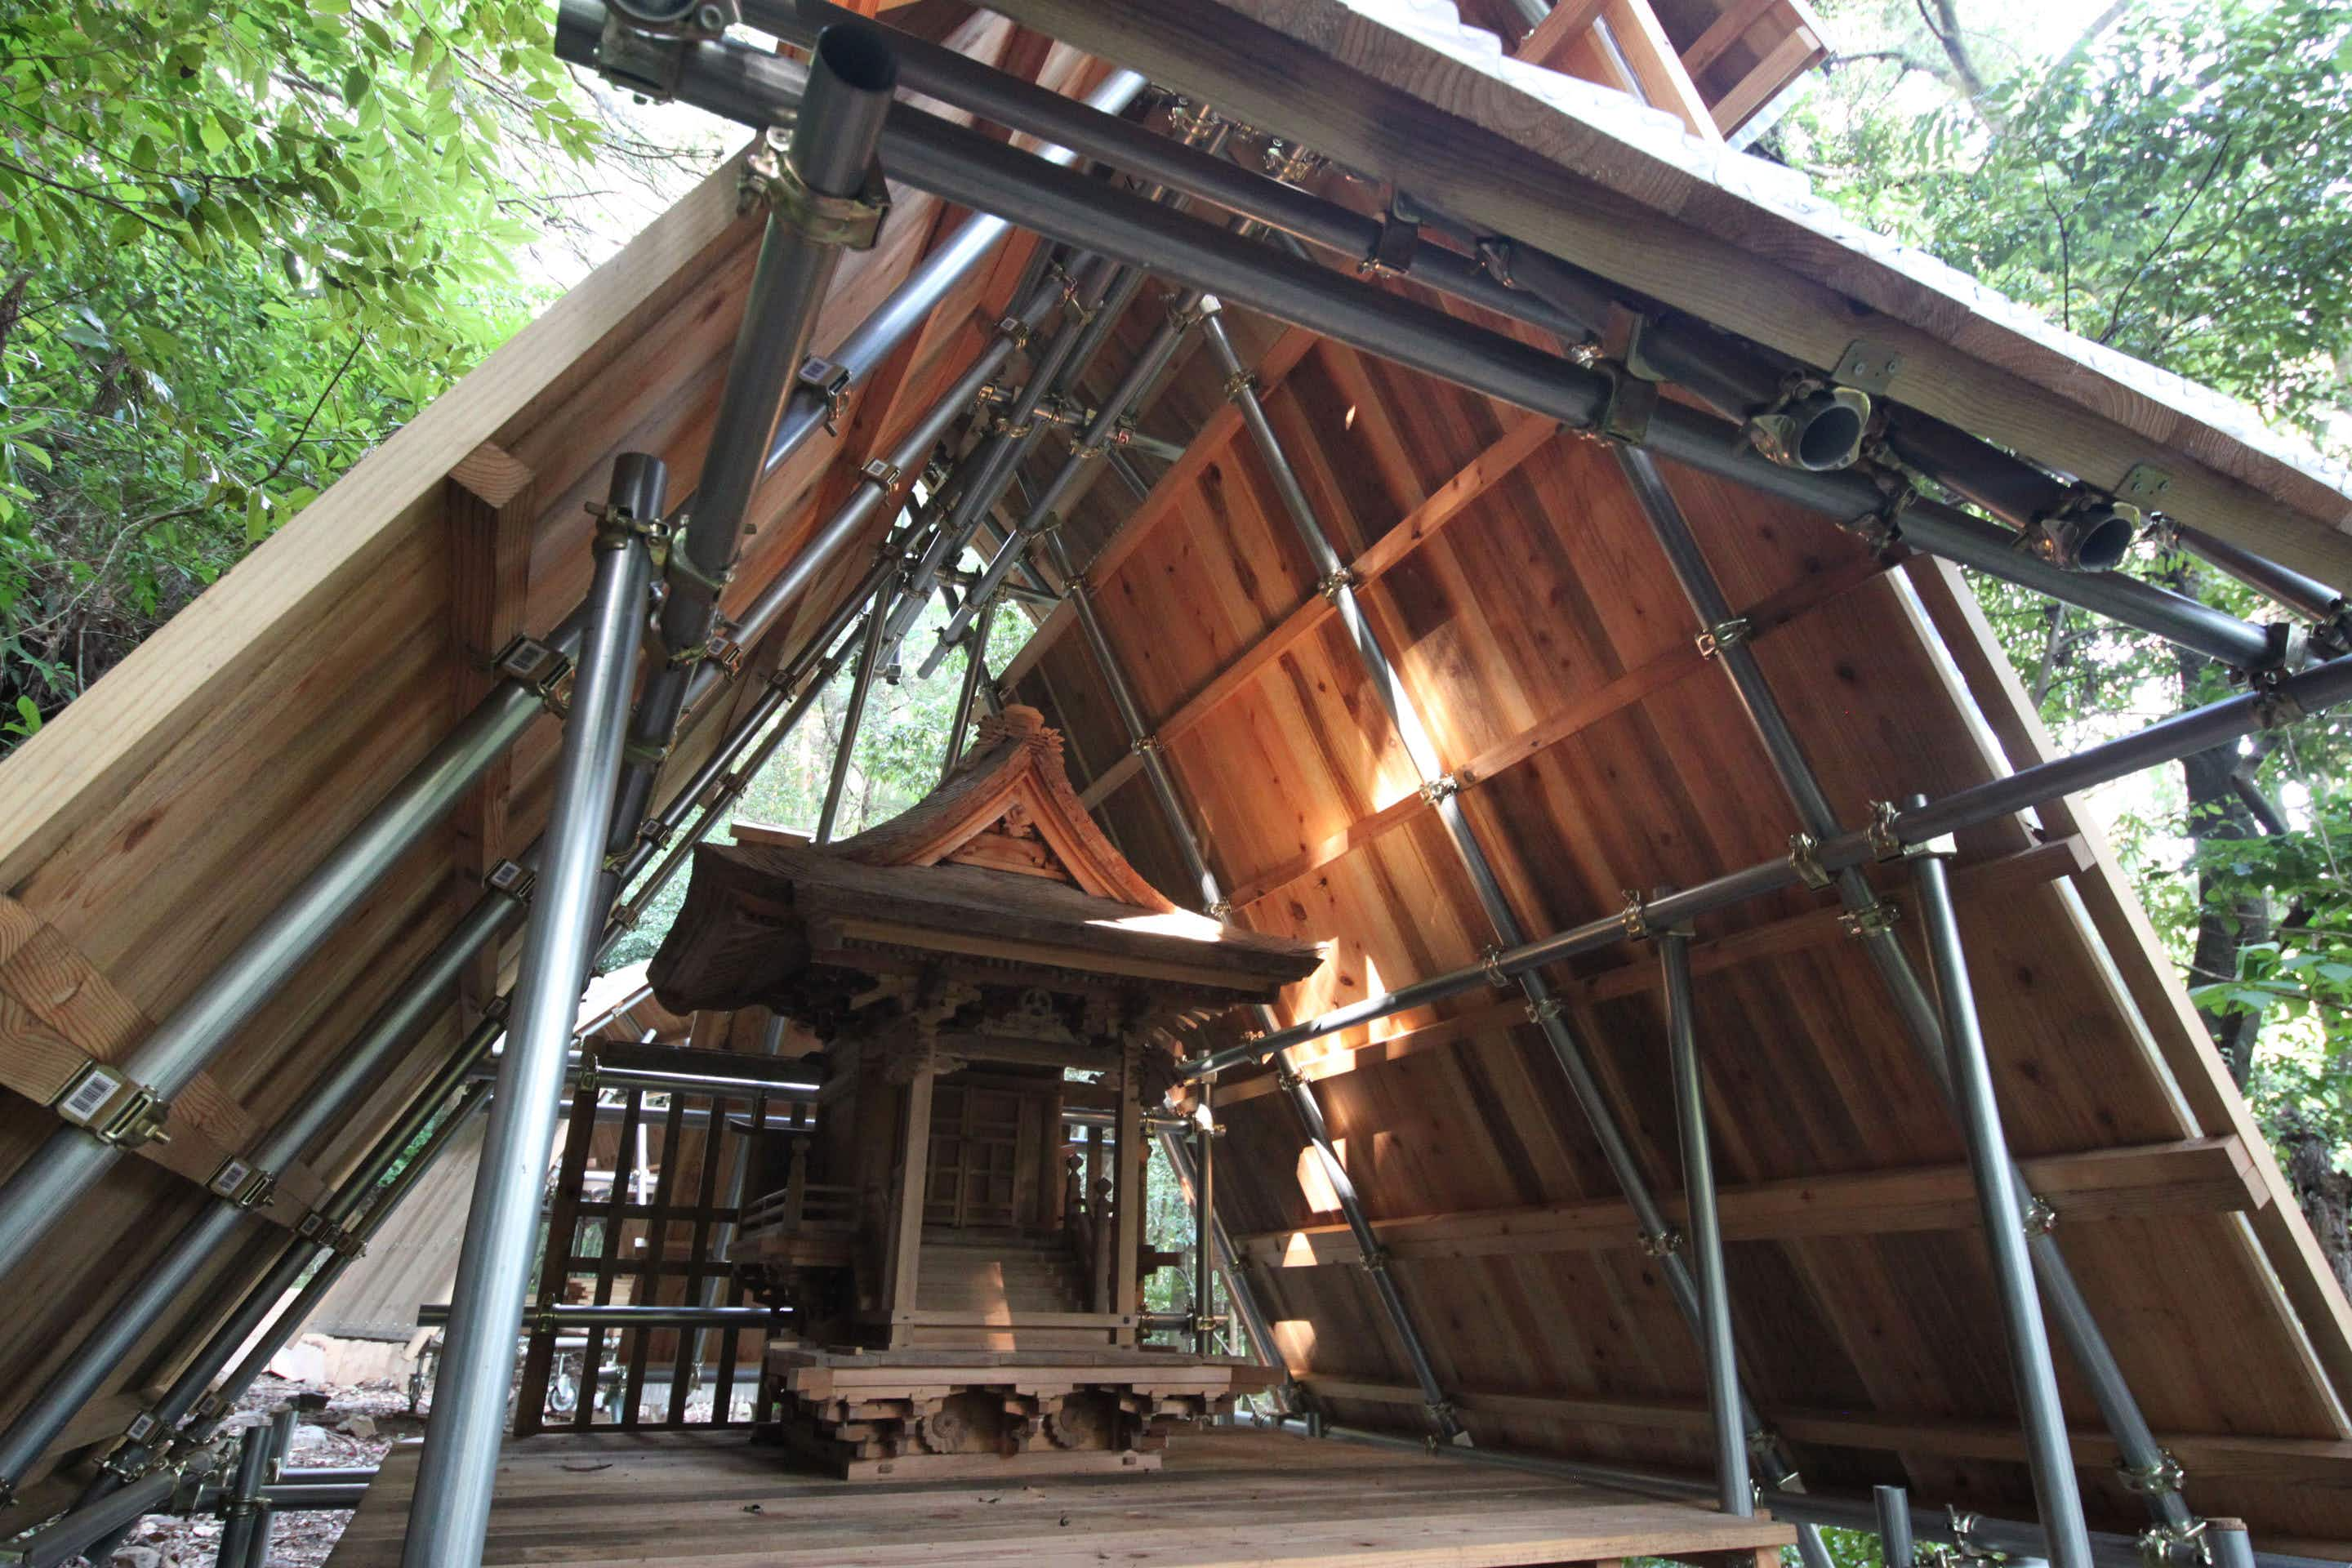 Architect builds portable wooden shrine in Japan's Kochi Mountains